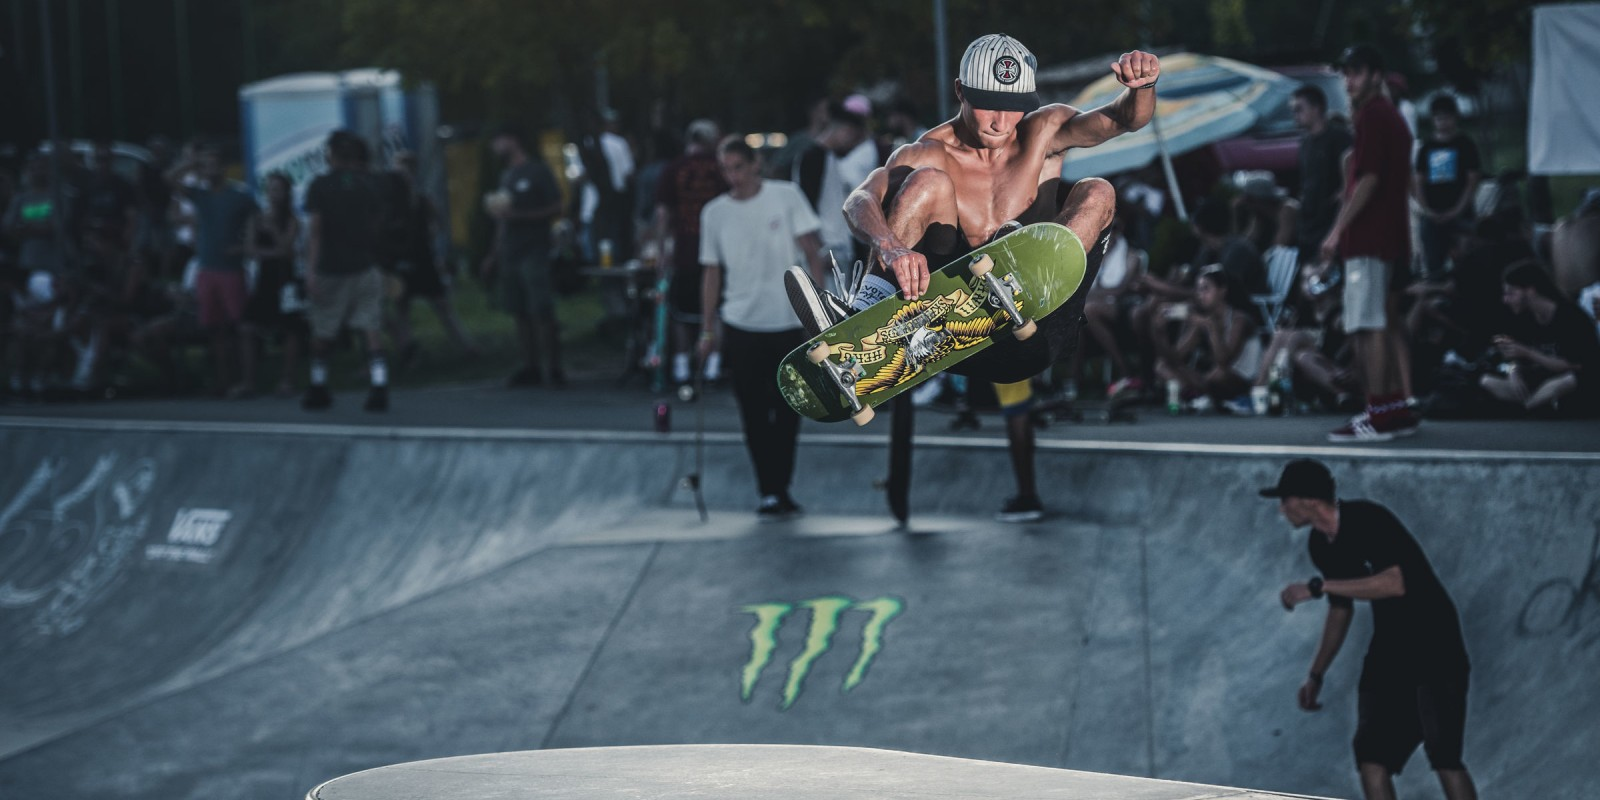 Photos taken during Burgas Skate Open 2018 supported by Monster Energy. Credits: Actiongraphers (Graphic Media)